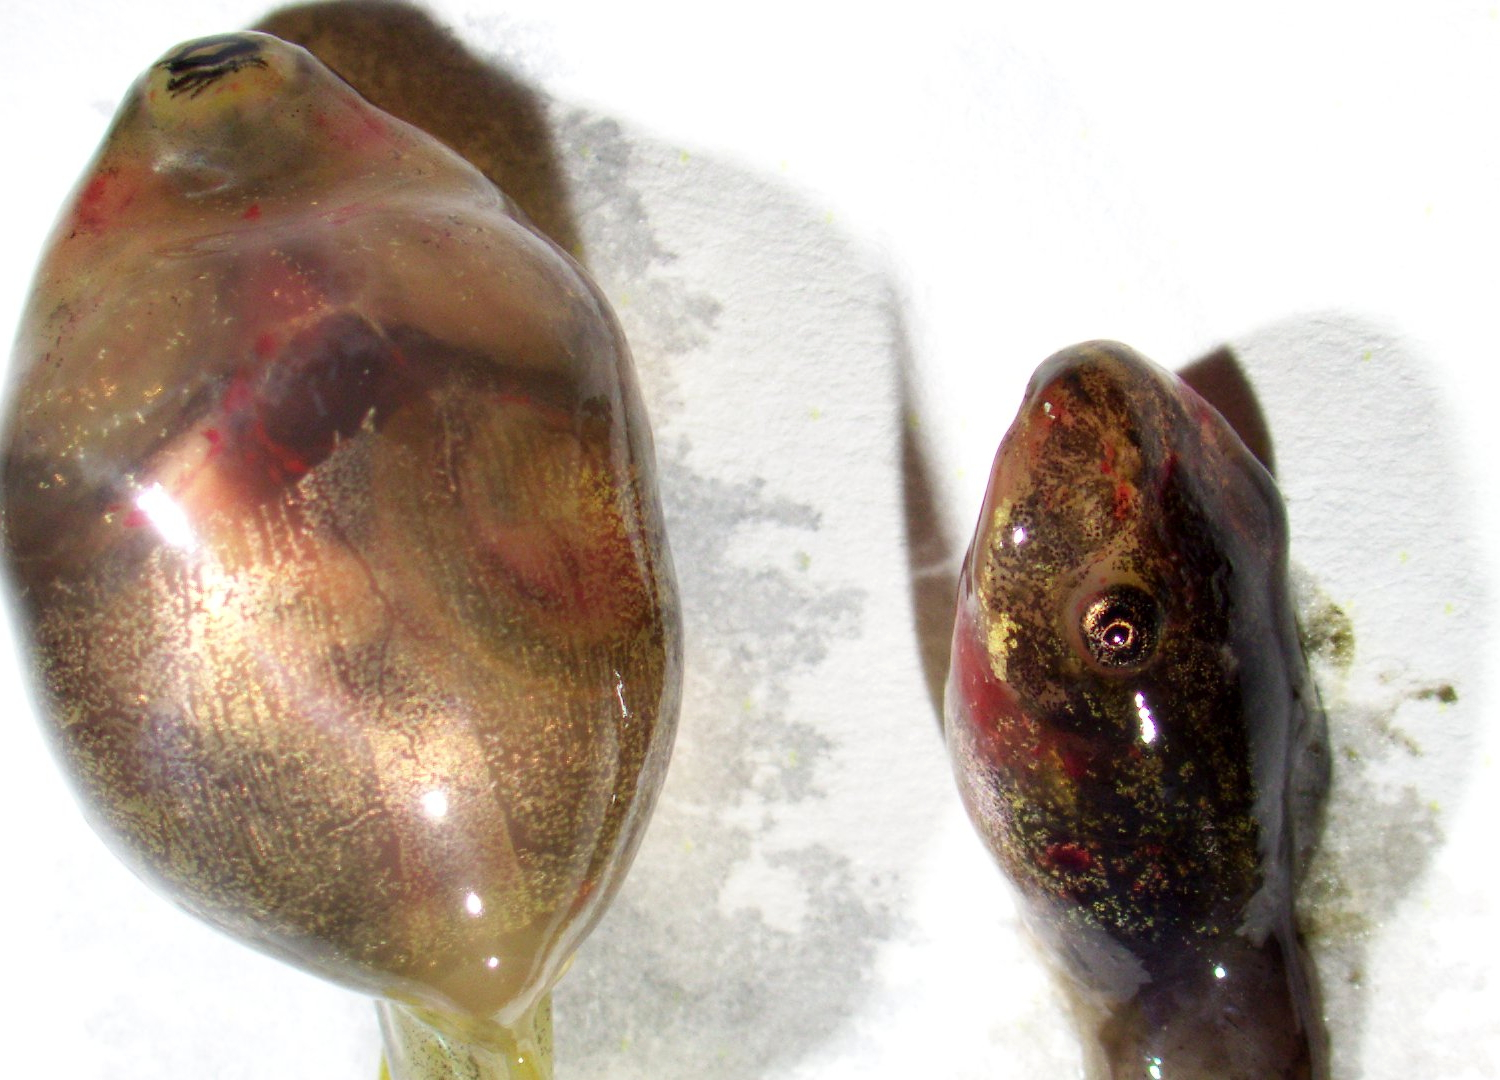 Tadpole size differences